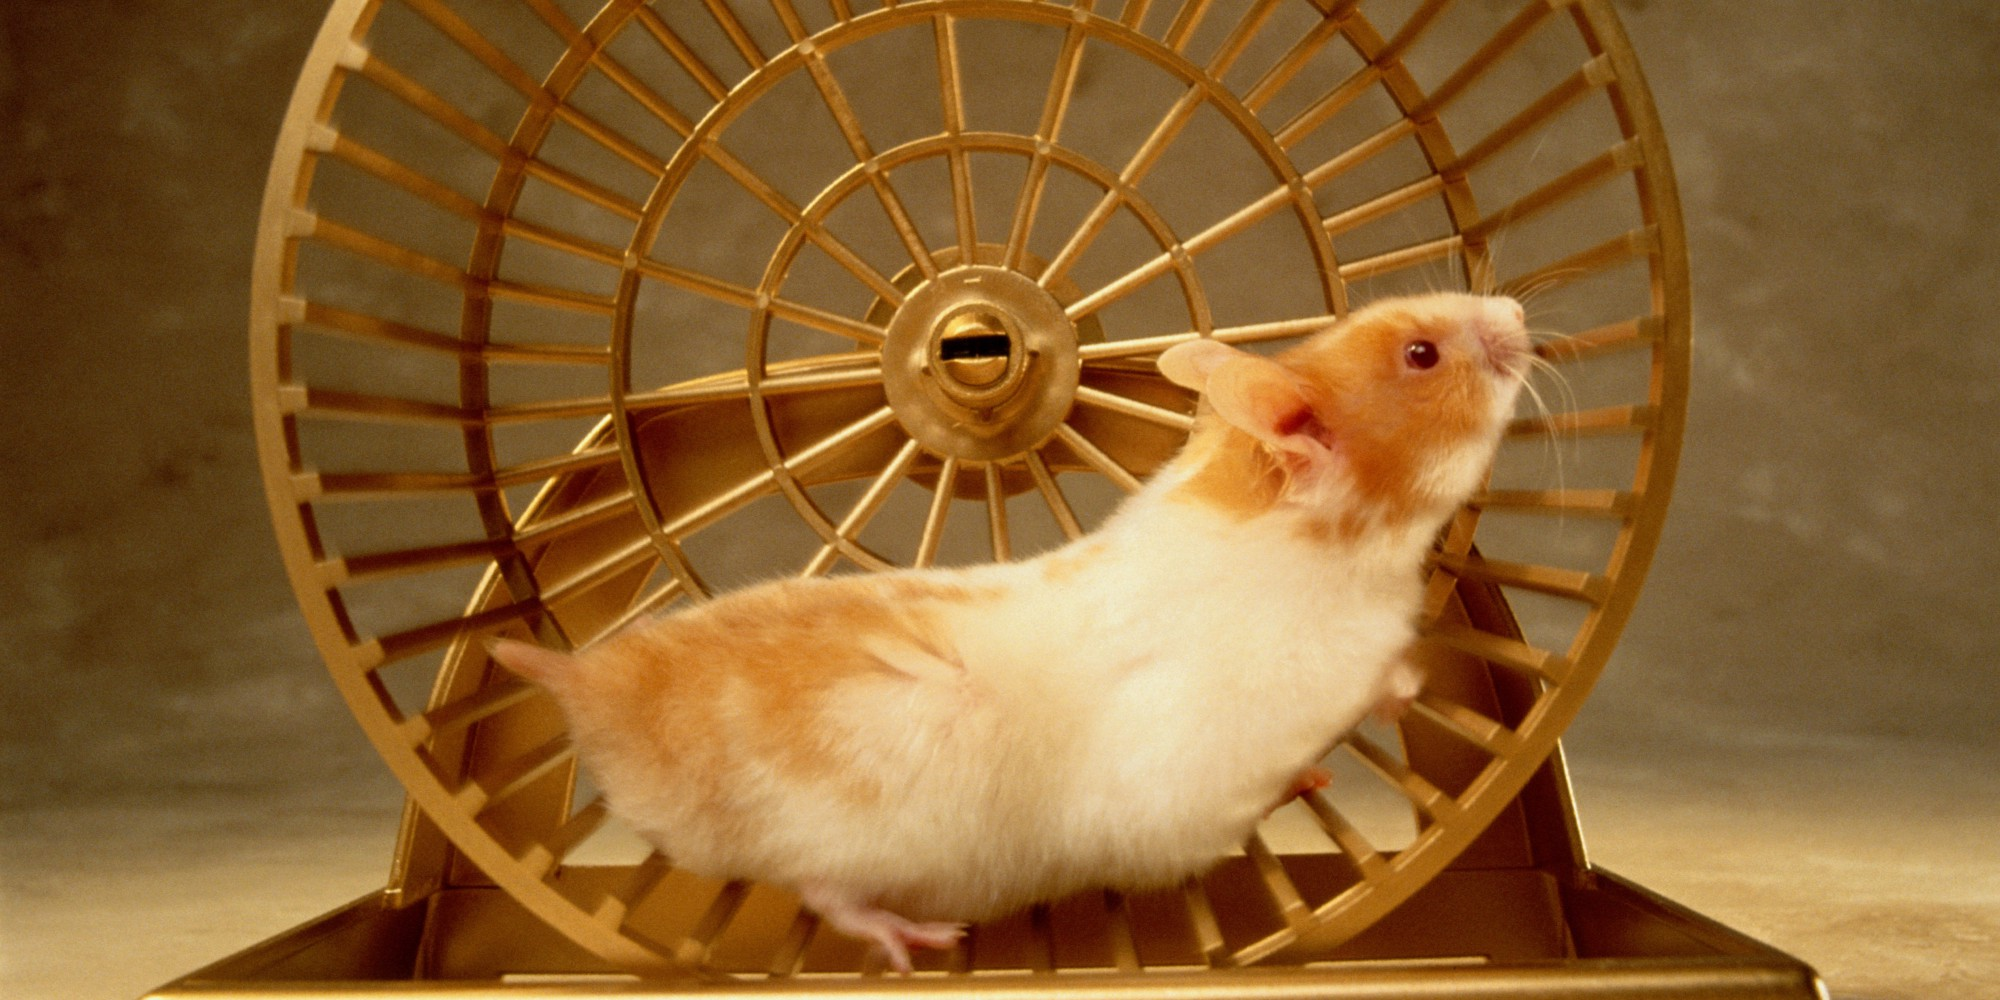 photo of a hamster running in a hamster wheel